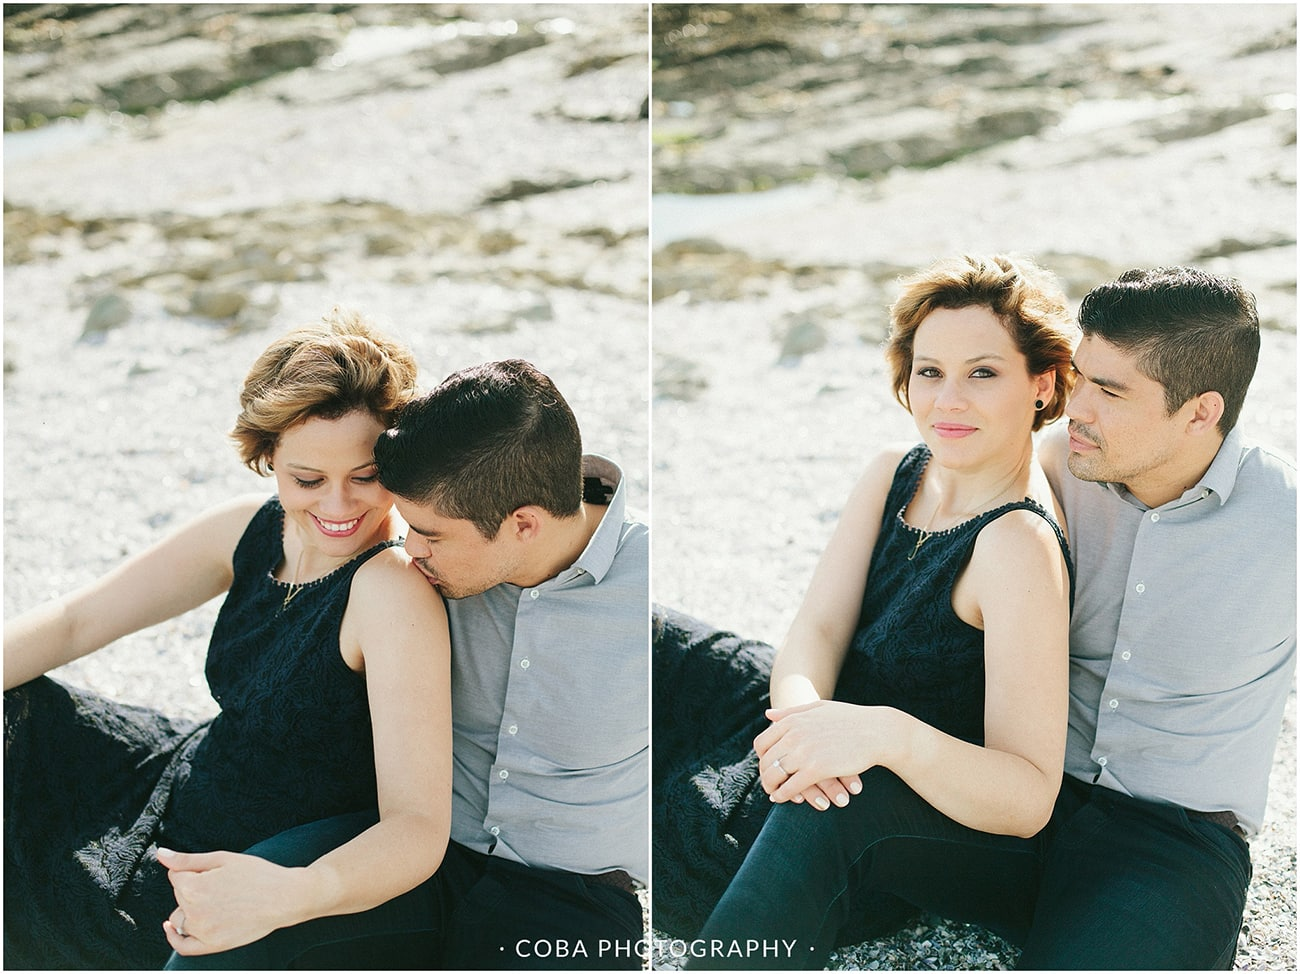 Fernando&taime - engaged - coba photography (9)